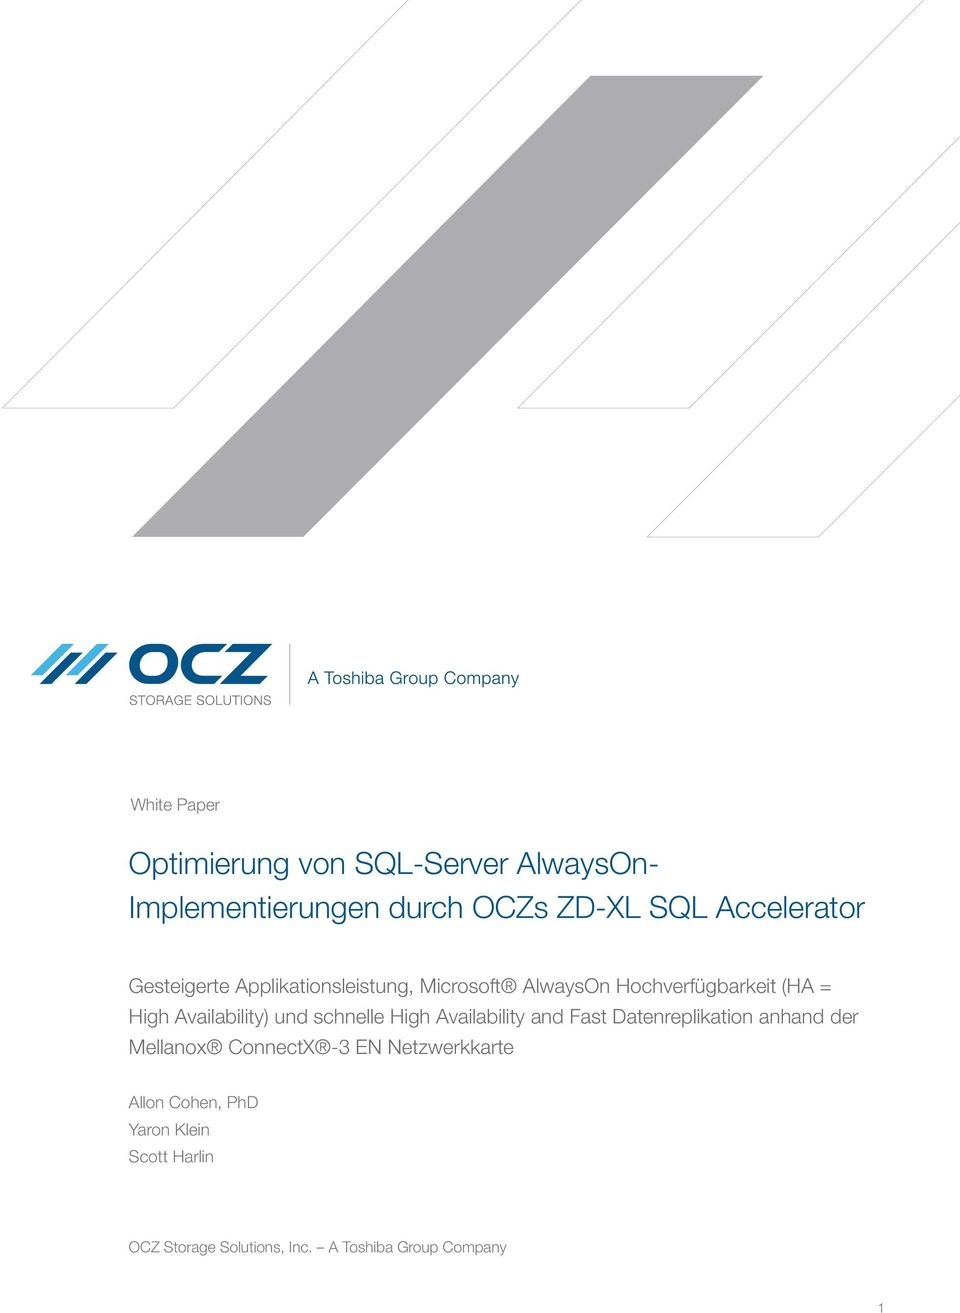 schnelle High Availability and Fast Datenreplikation anhand der Mellanox ConnectX -3 EN